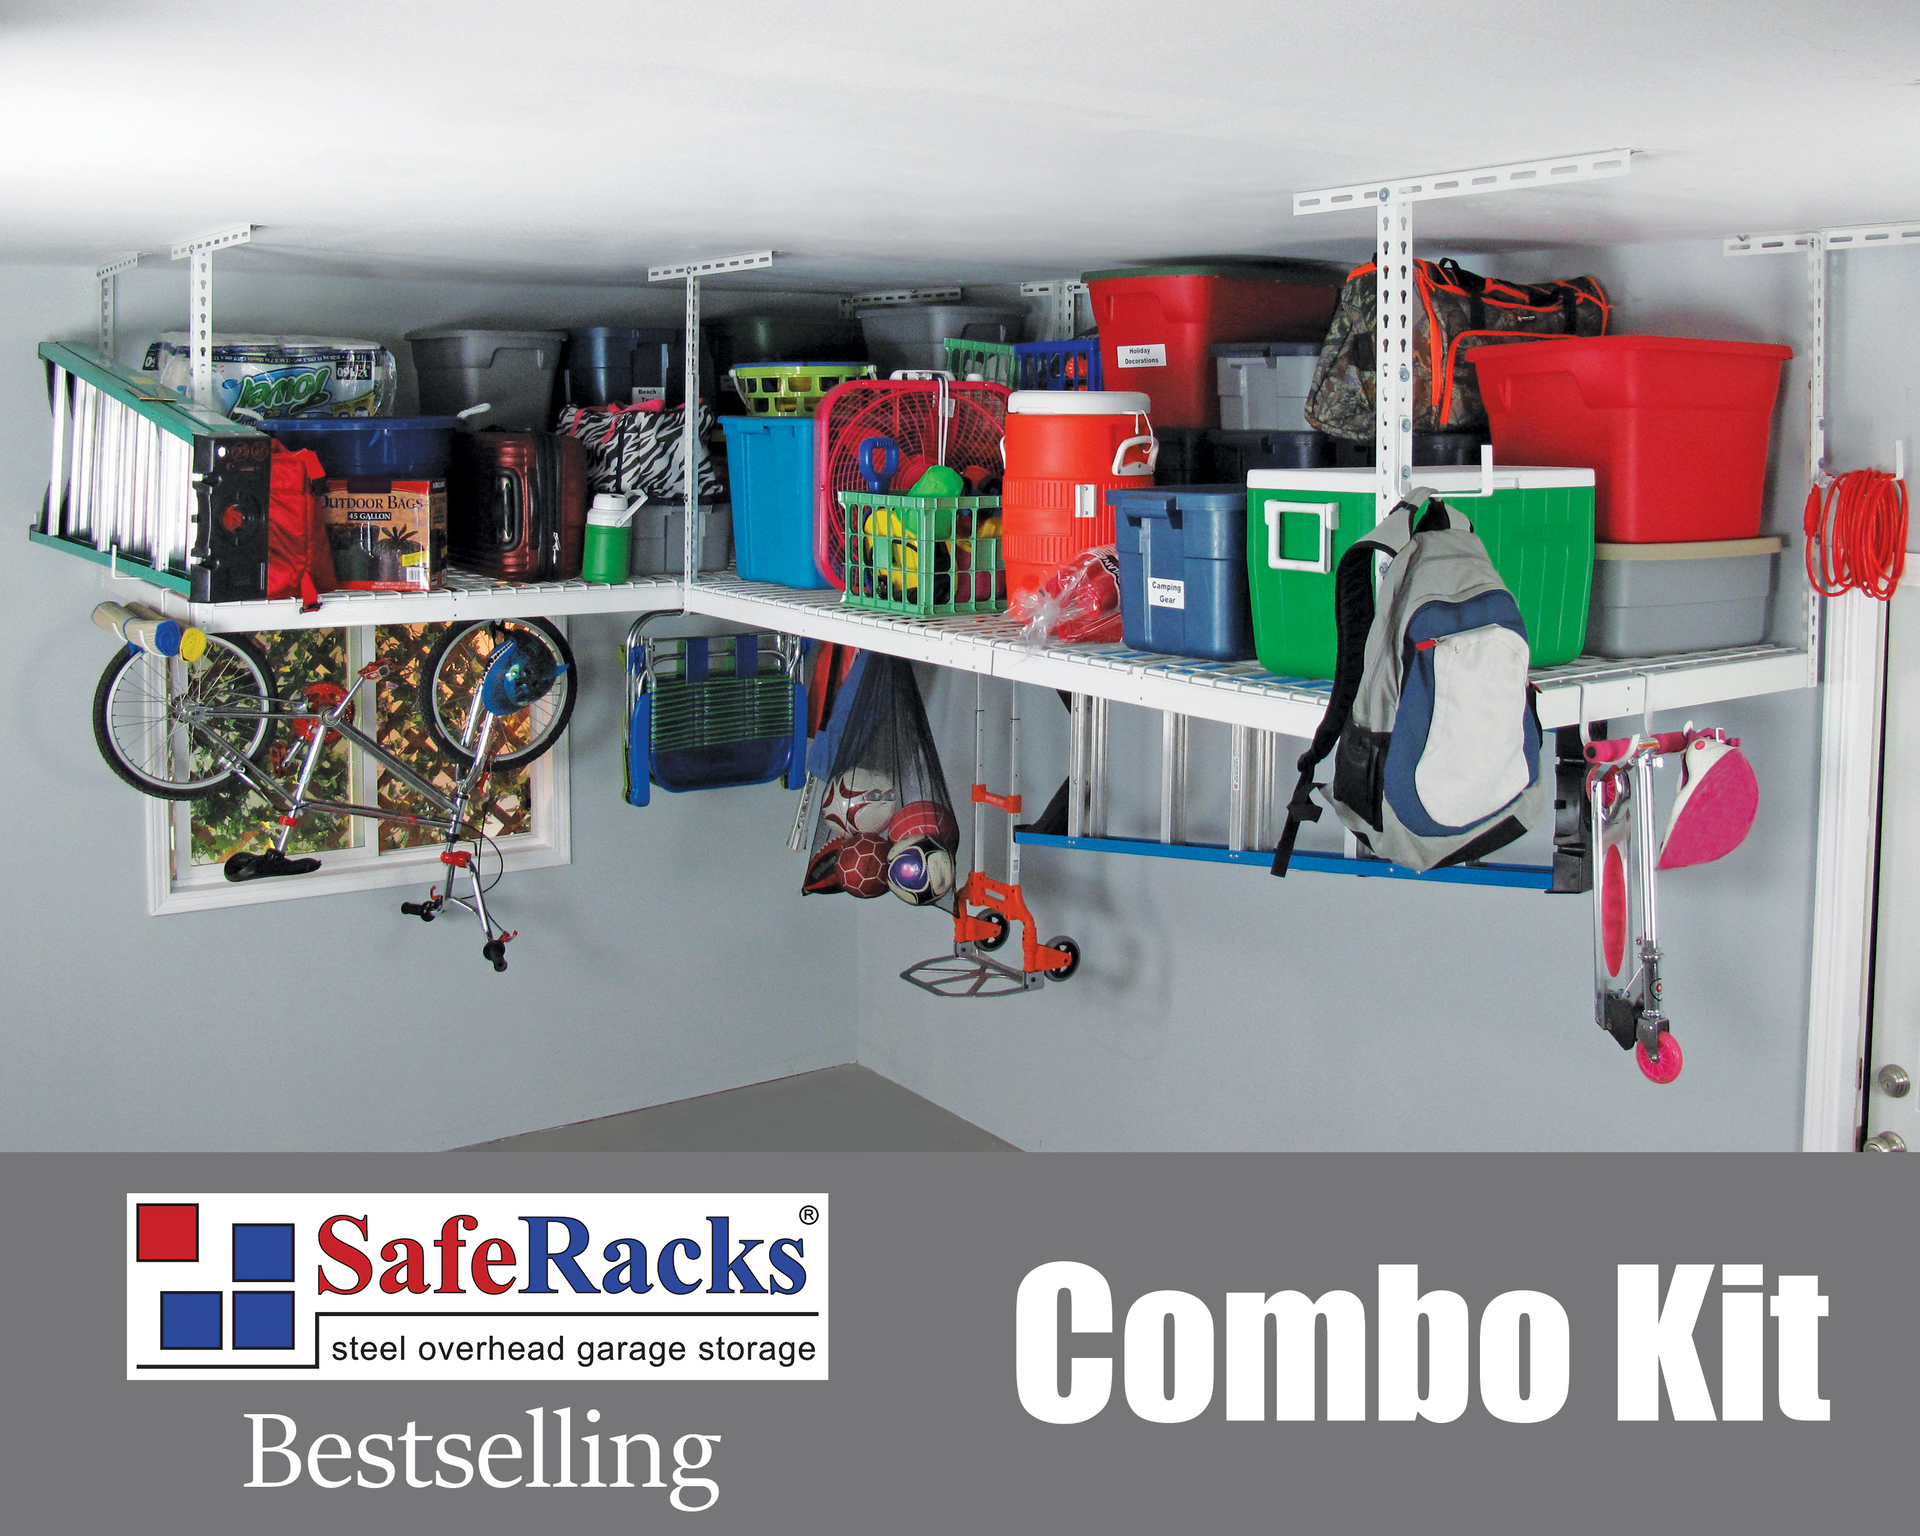 These High Quality Storage Racks Help To Make Your Garage A More Functional E For Vehicles And Toys Saferacks Is Designed First Foremost